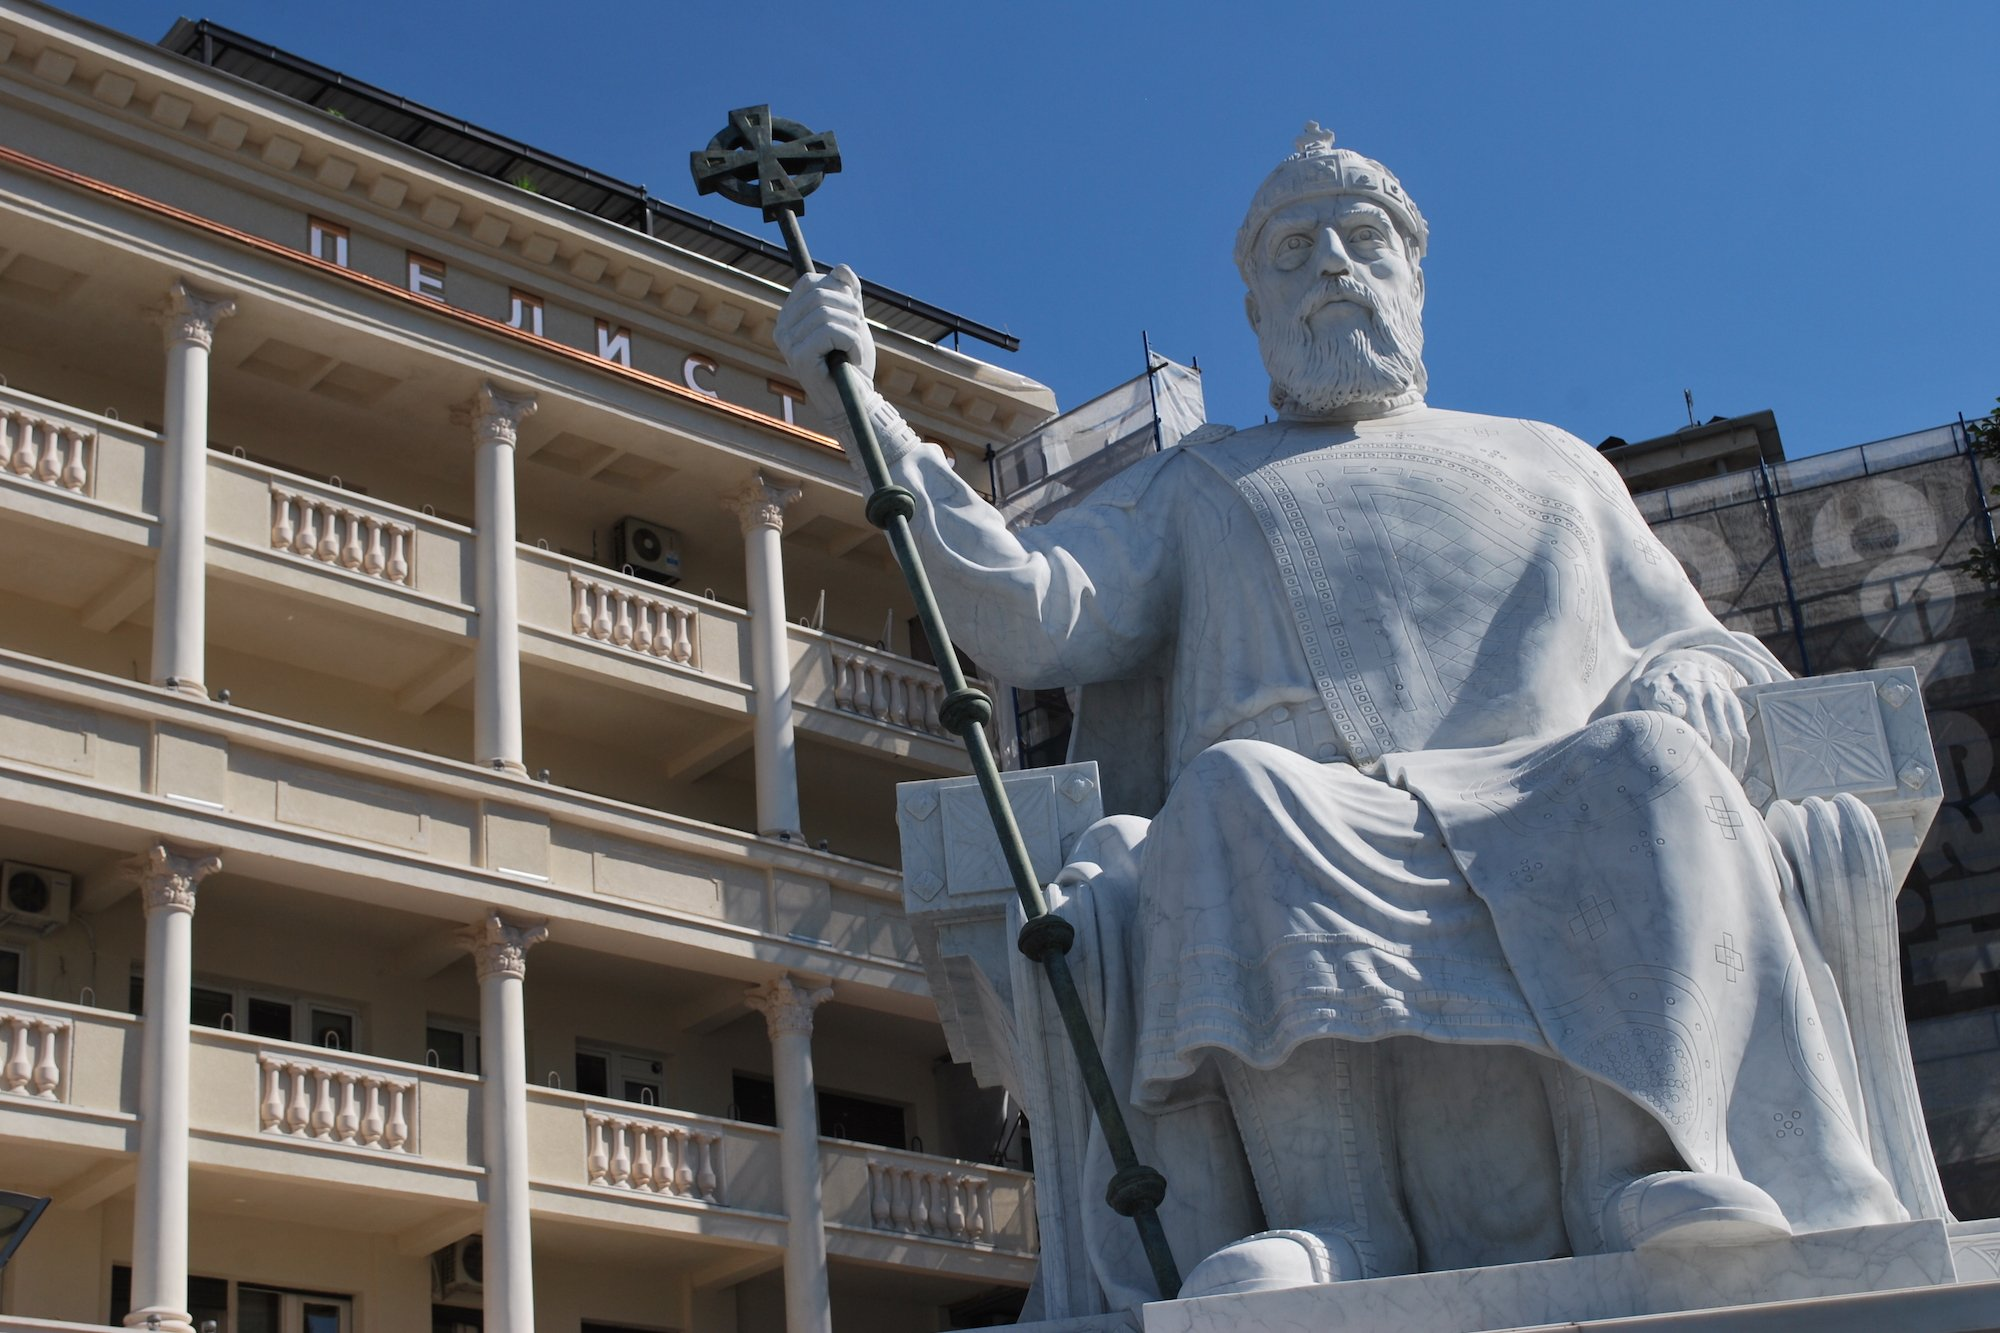 A statue to the ancient ruler Tsar Samoil. Image: Rašo under a CC licence